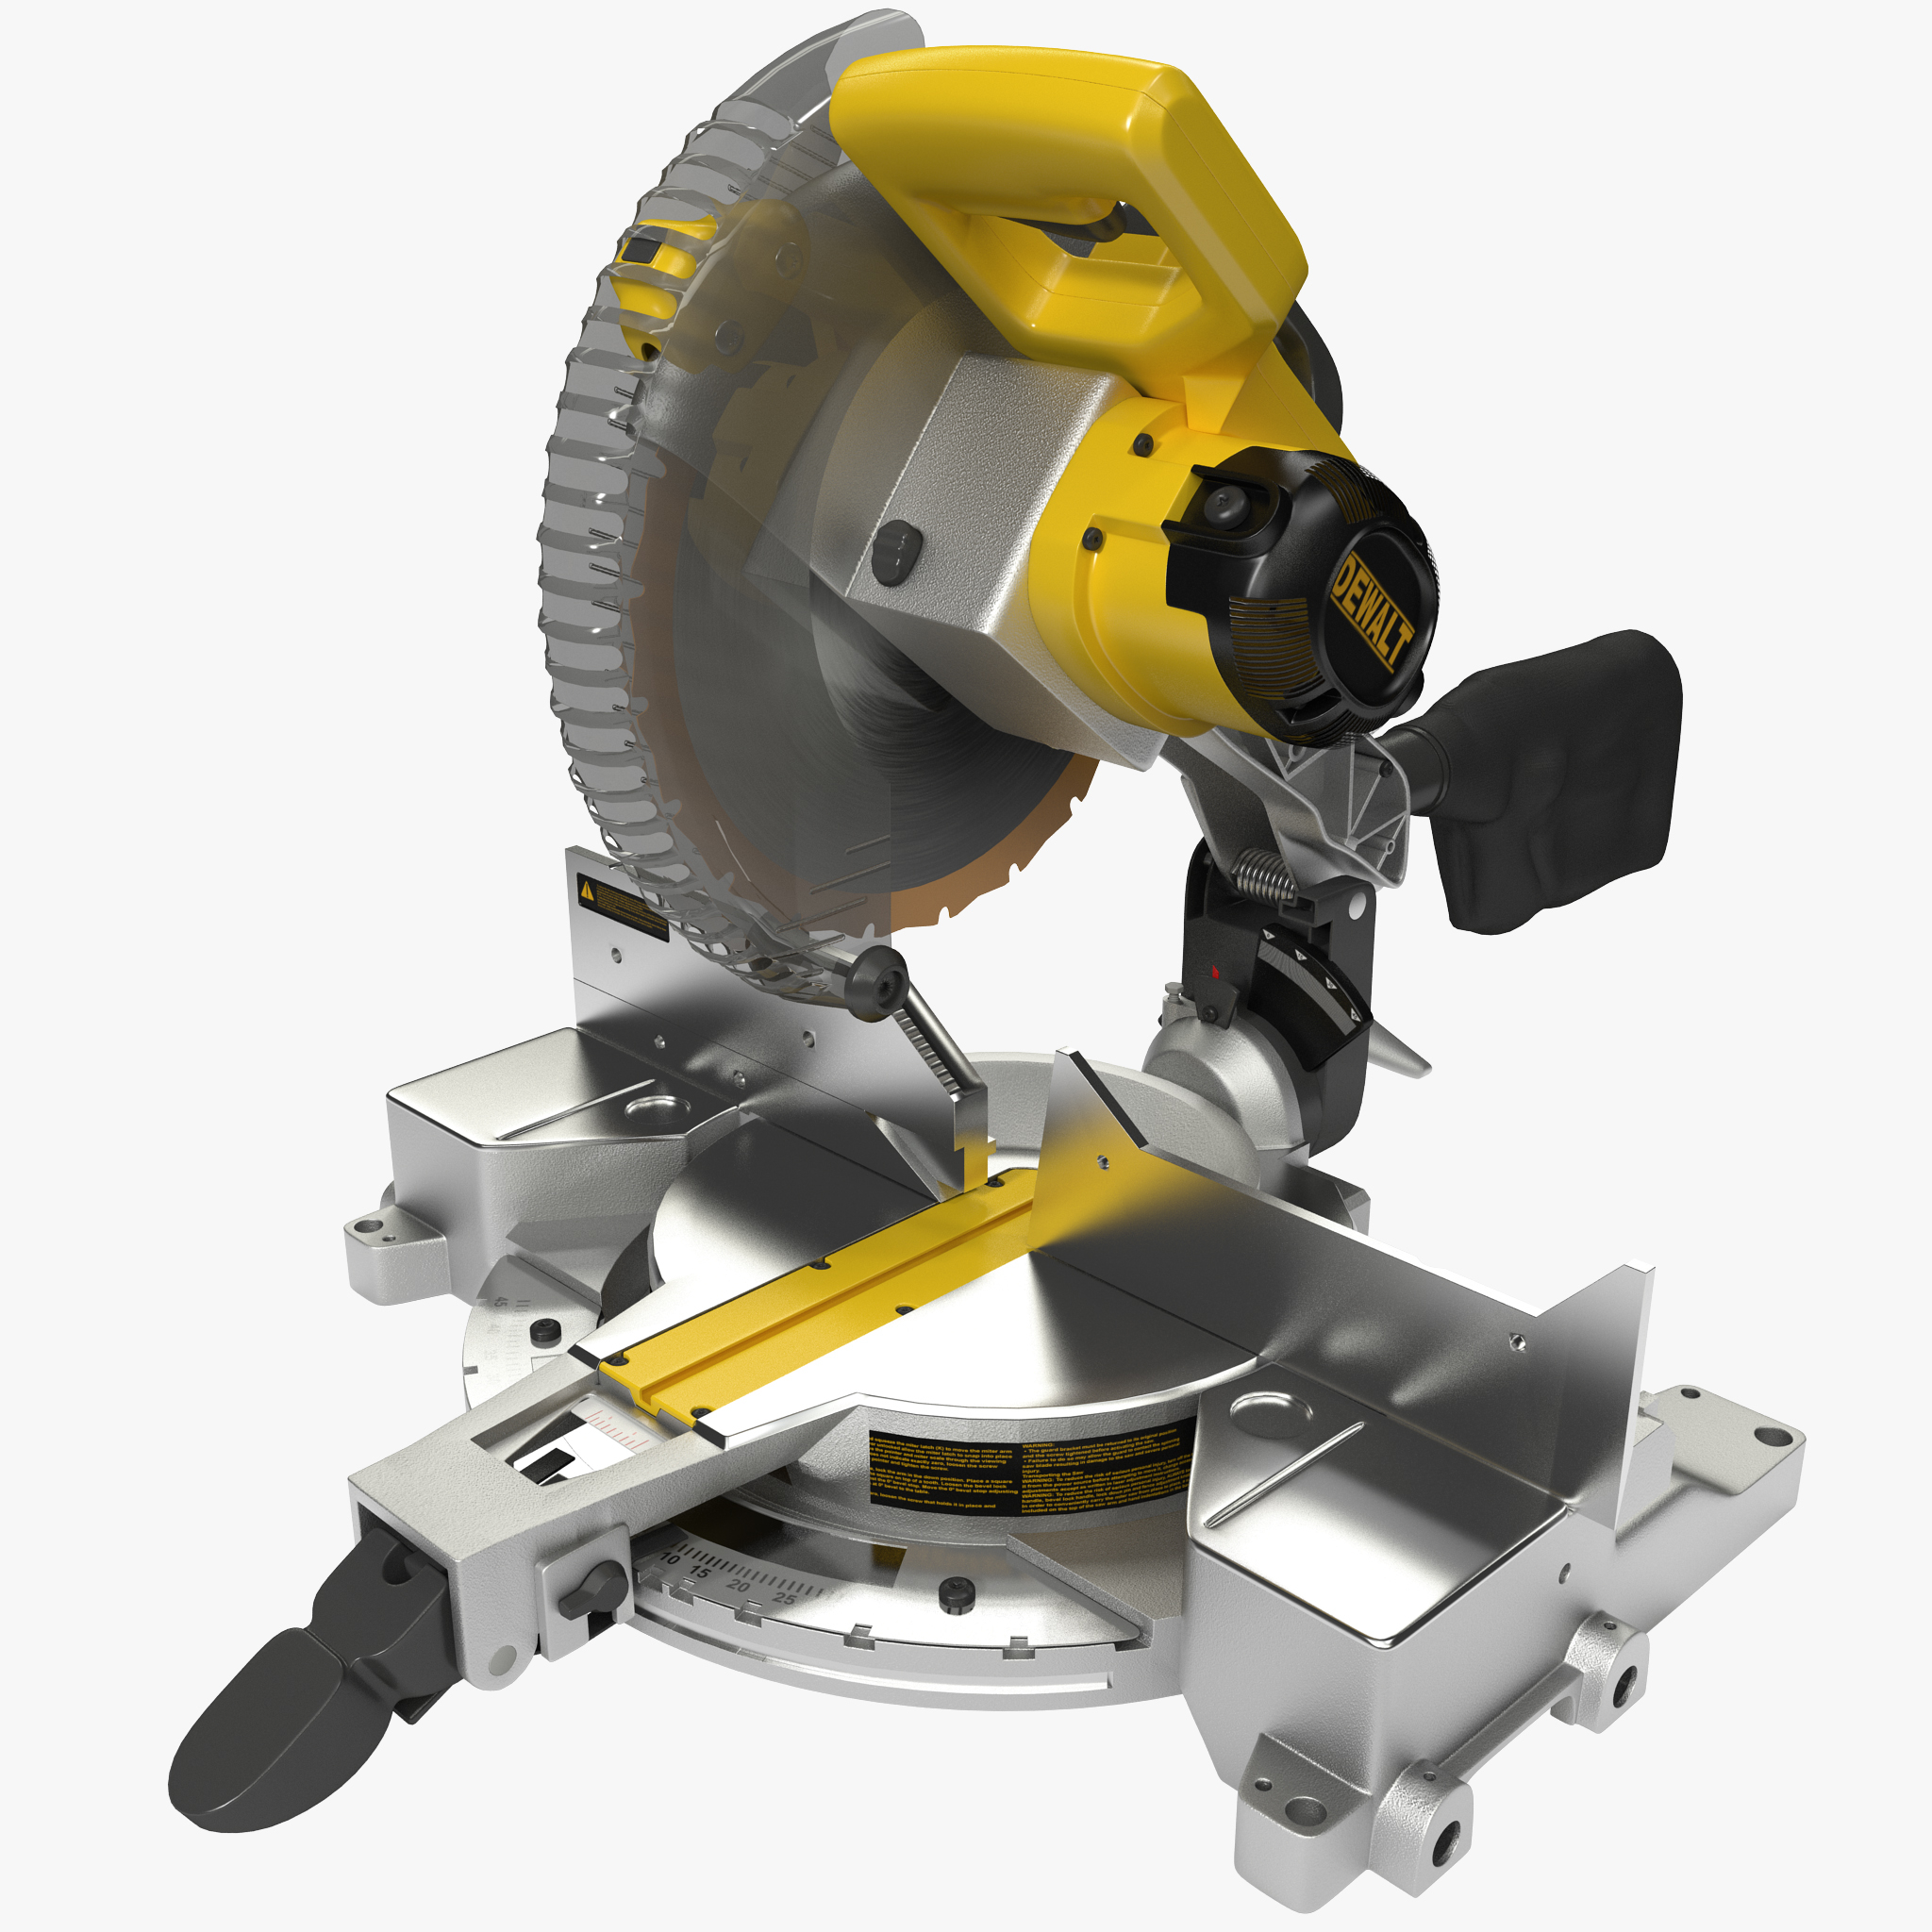 The Compound Miter Saw